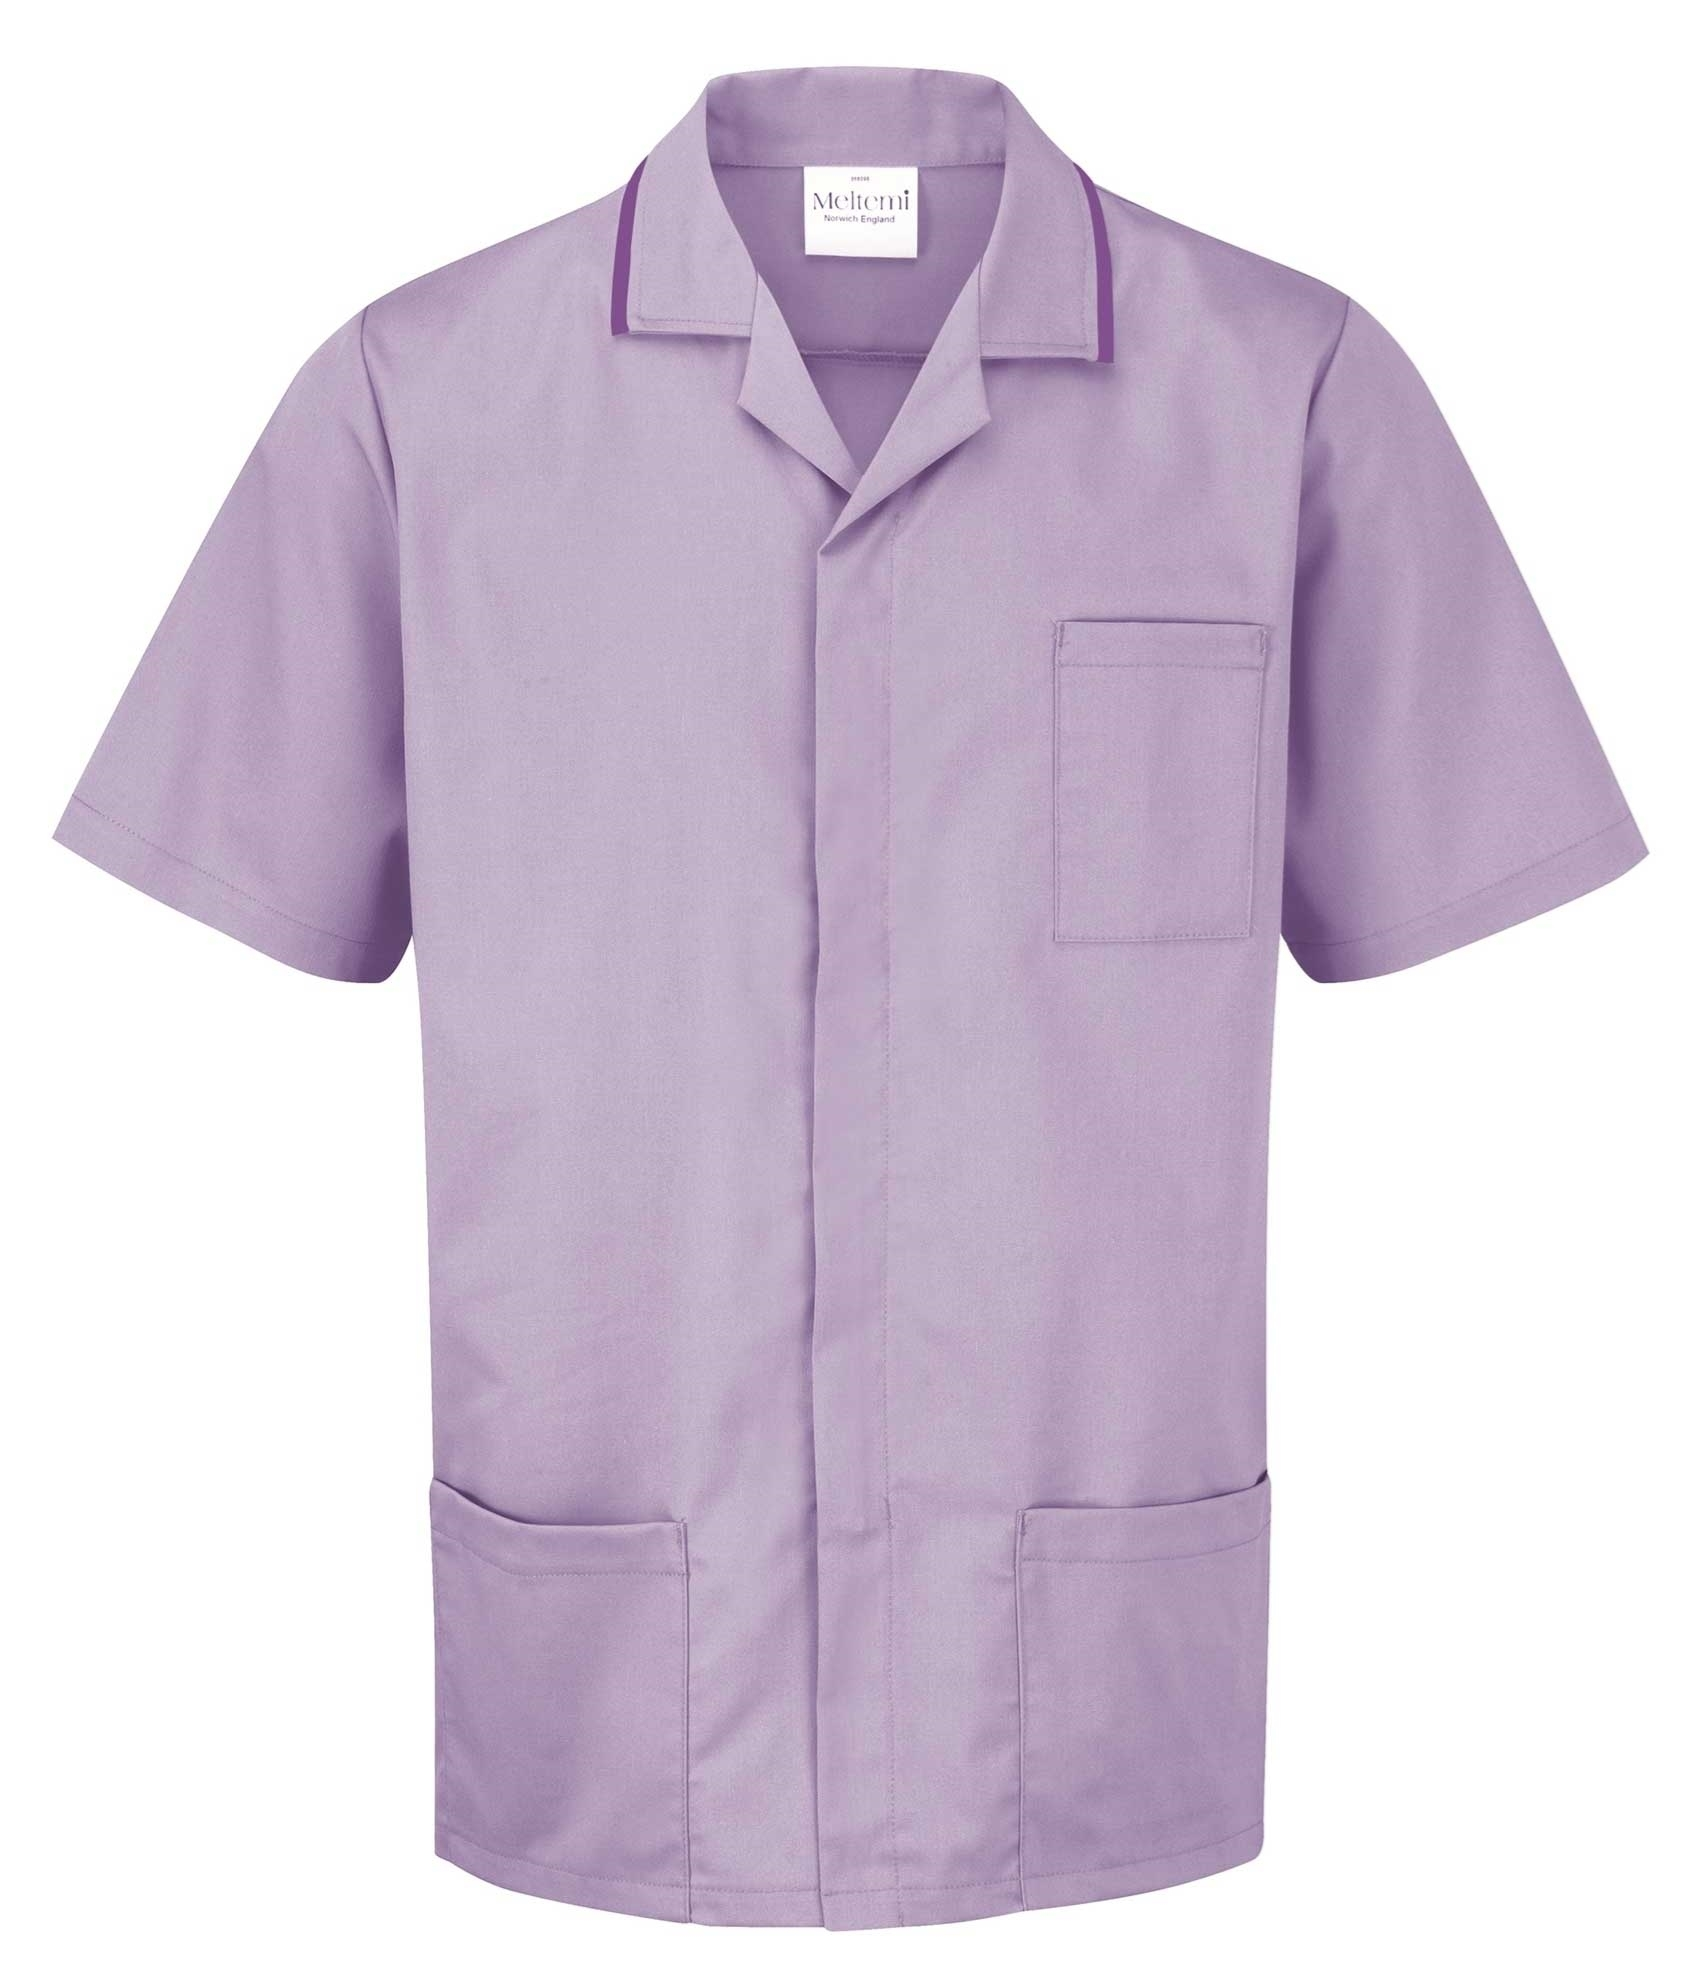 Picture of Advantage Front Fastening Tunic - Lilac/Purple